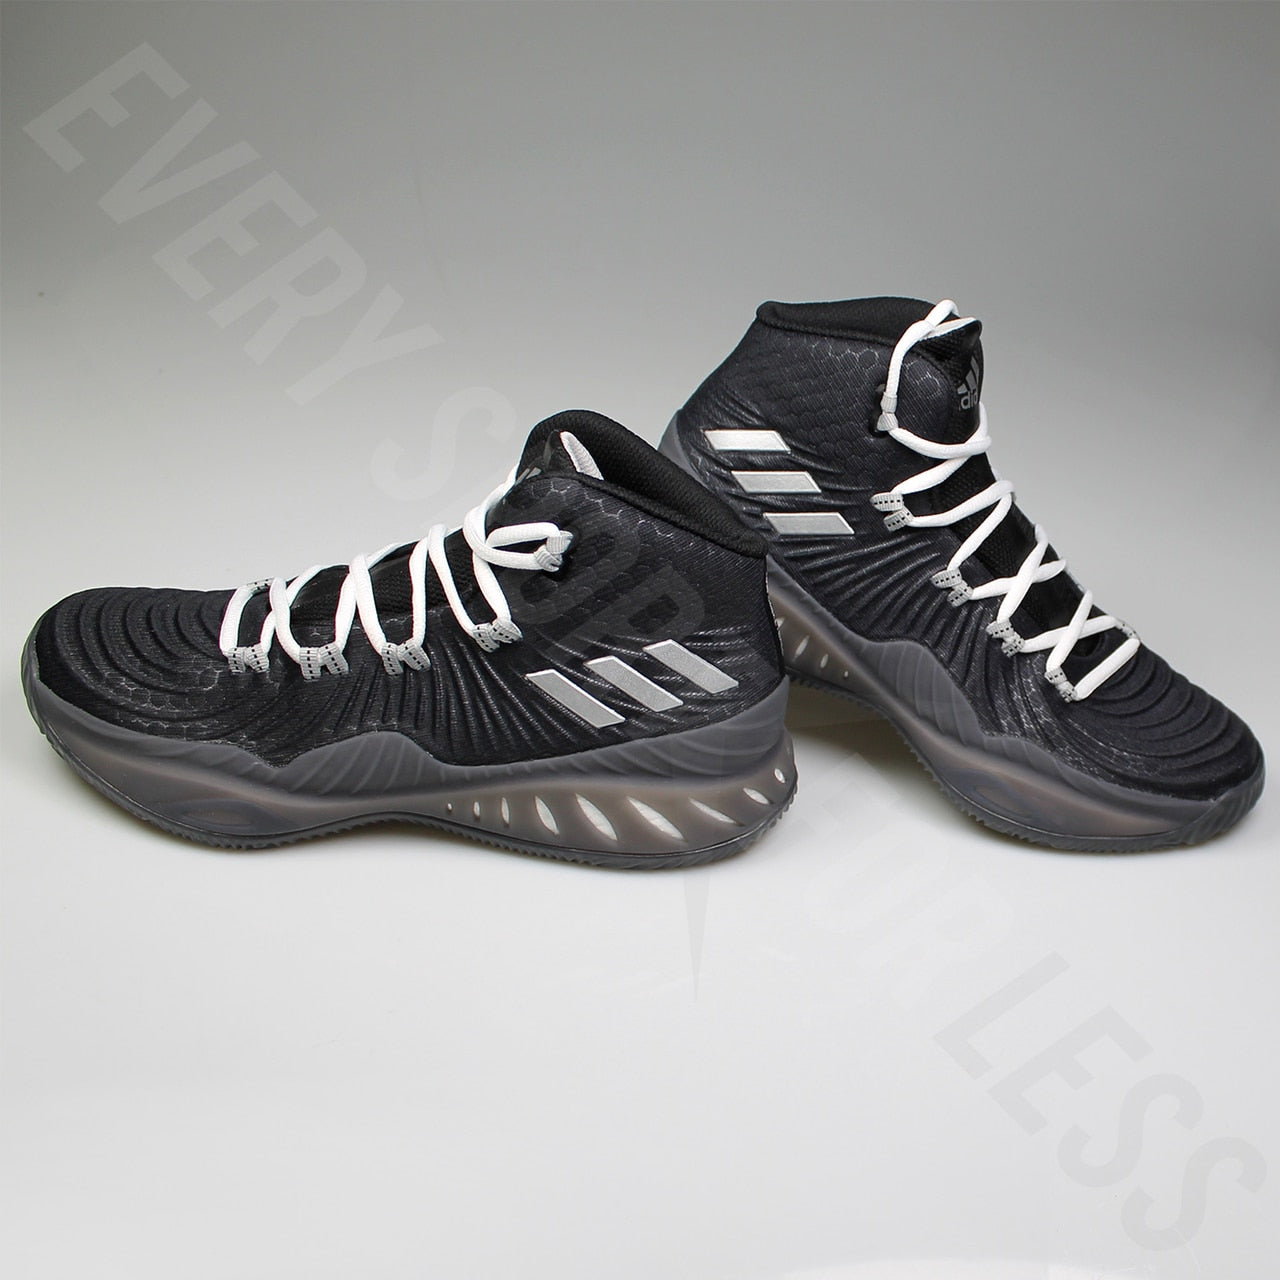 ... Adidas 2017 Crazy Explosive Mens Basketball Shoes BW0985